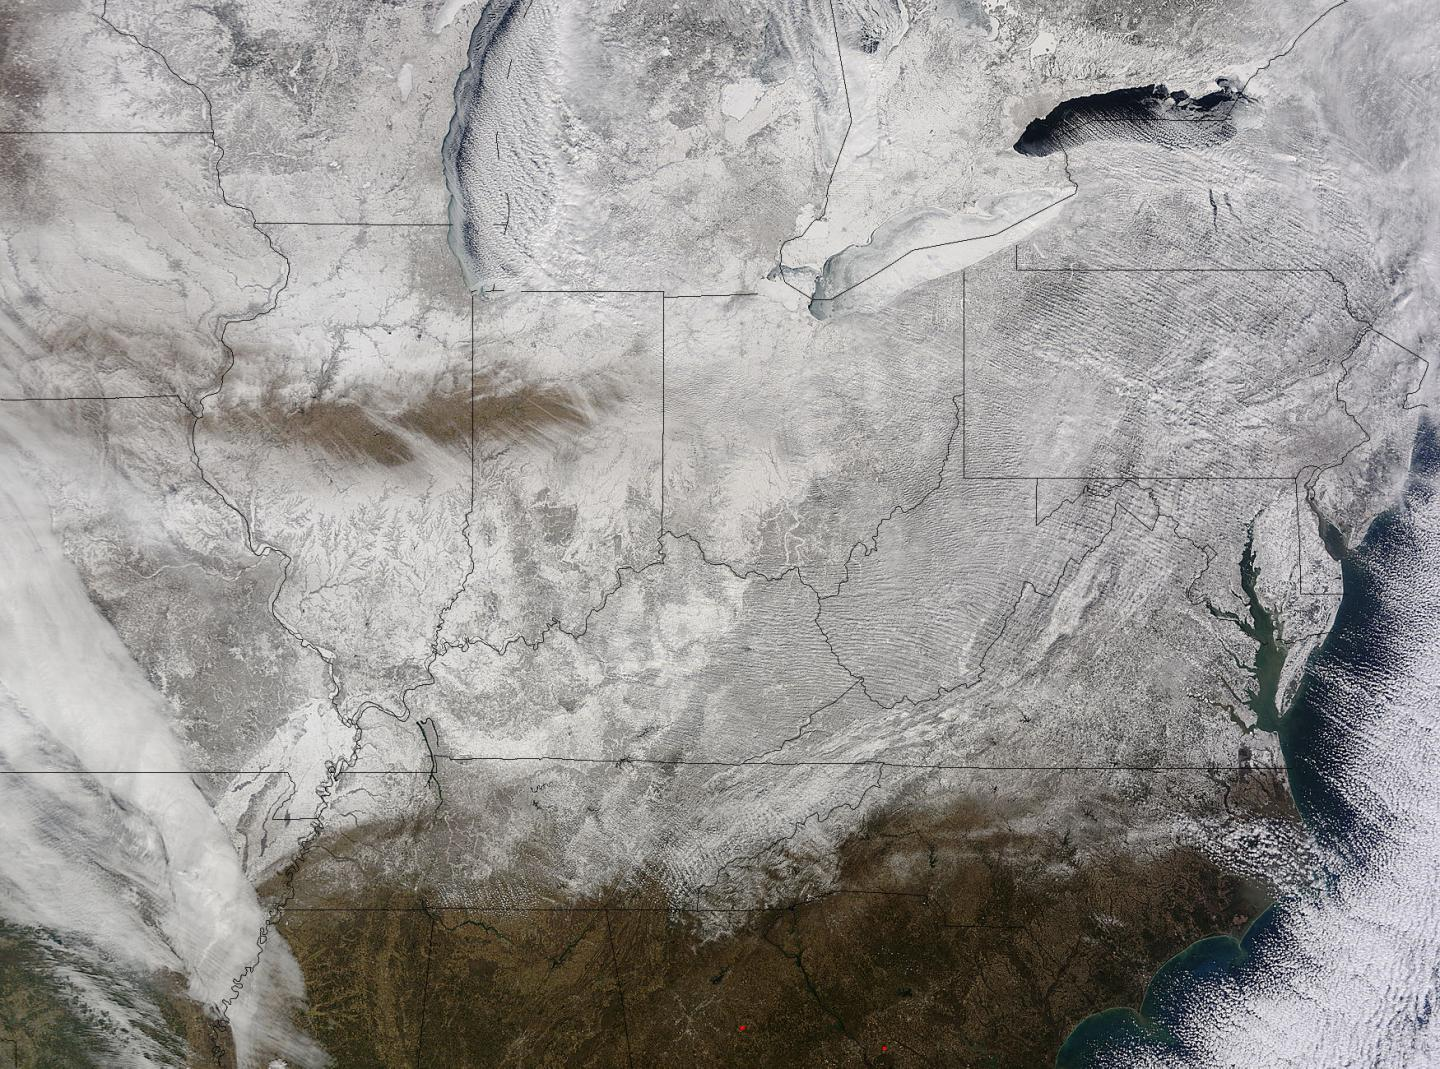 NASA Snaps Picture of Eastern US in a Record-Breaking